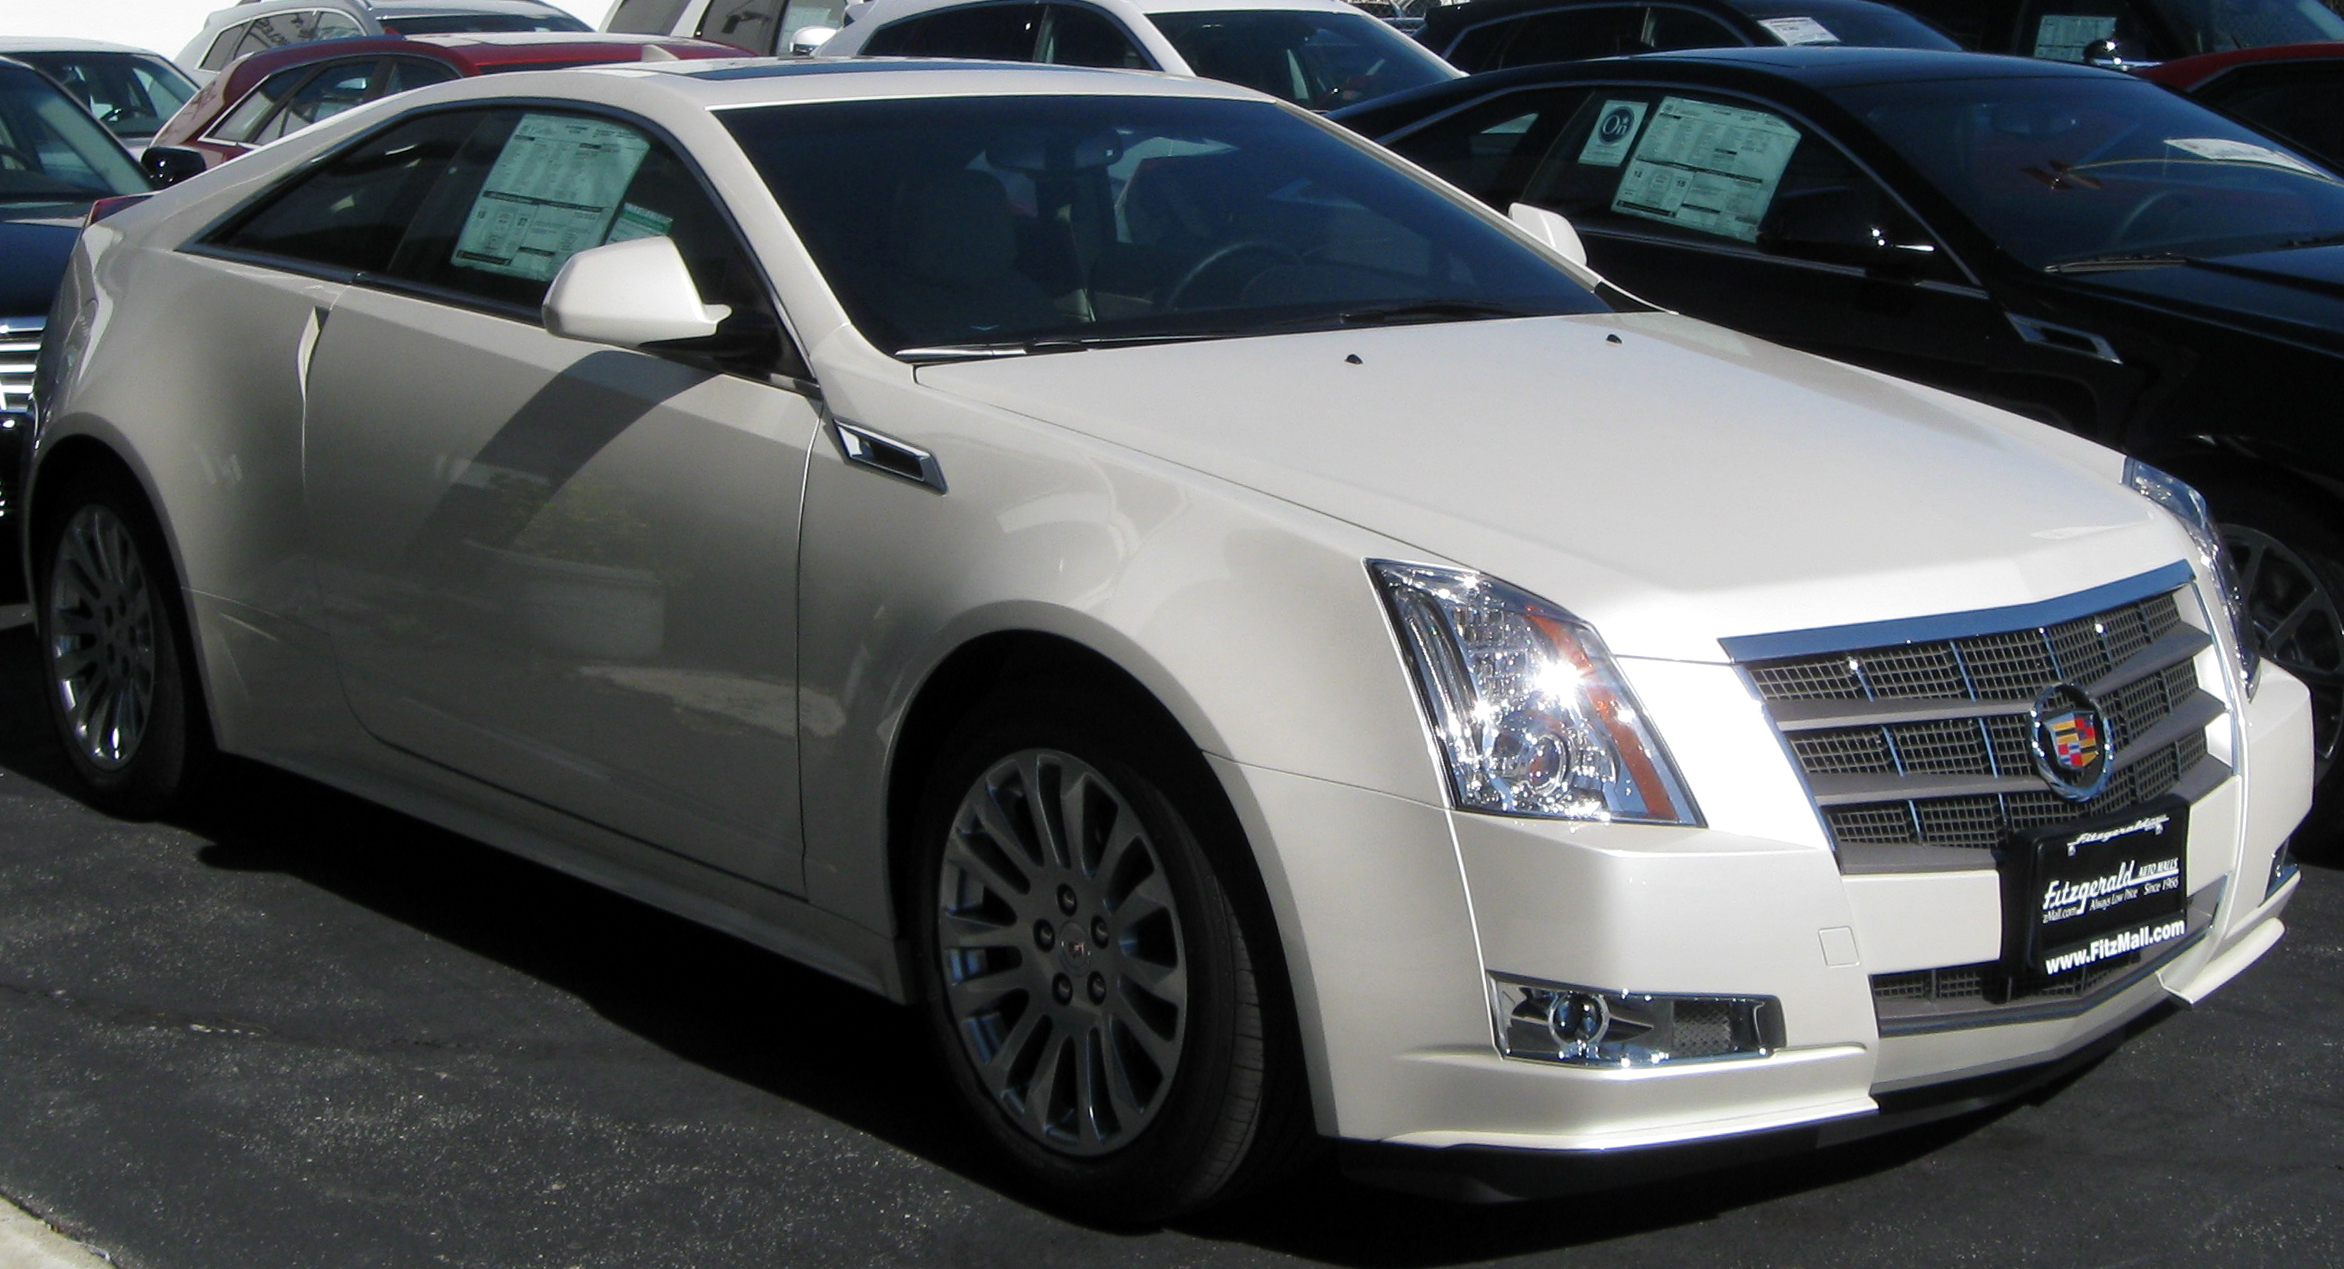 file 2011 cadillac cts coupe 10 22 2010 wikimedia commons. Black Bedroom Furniture Sets. Home Design Ideas